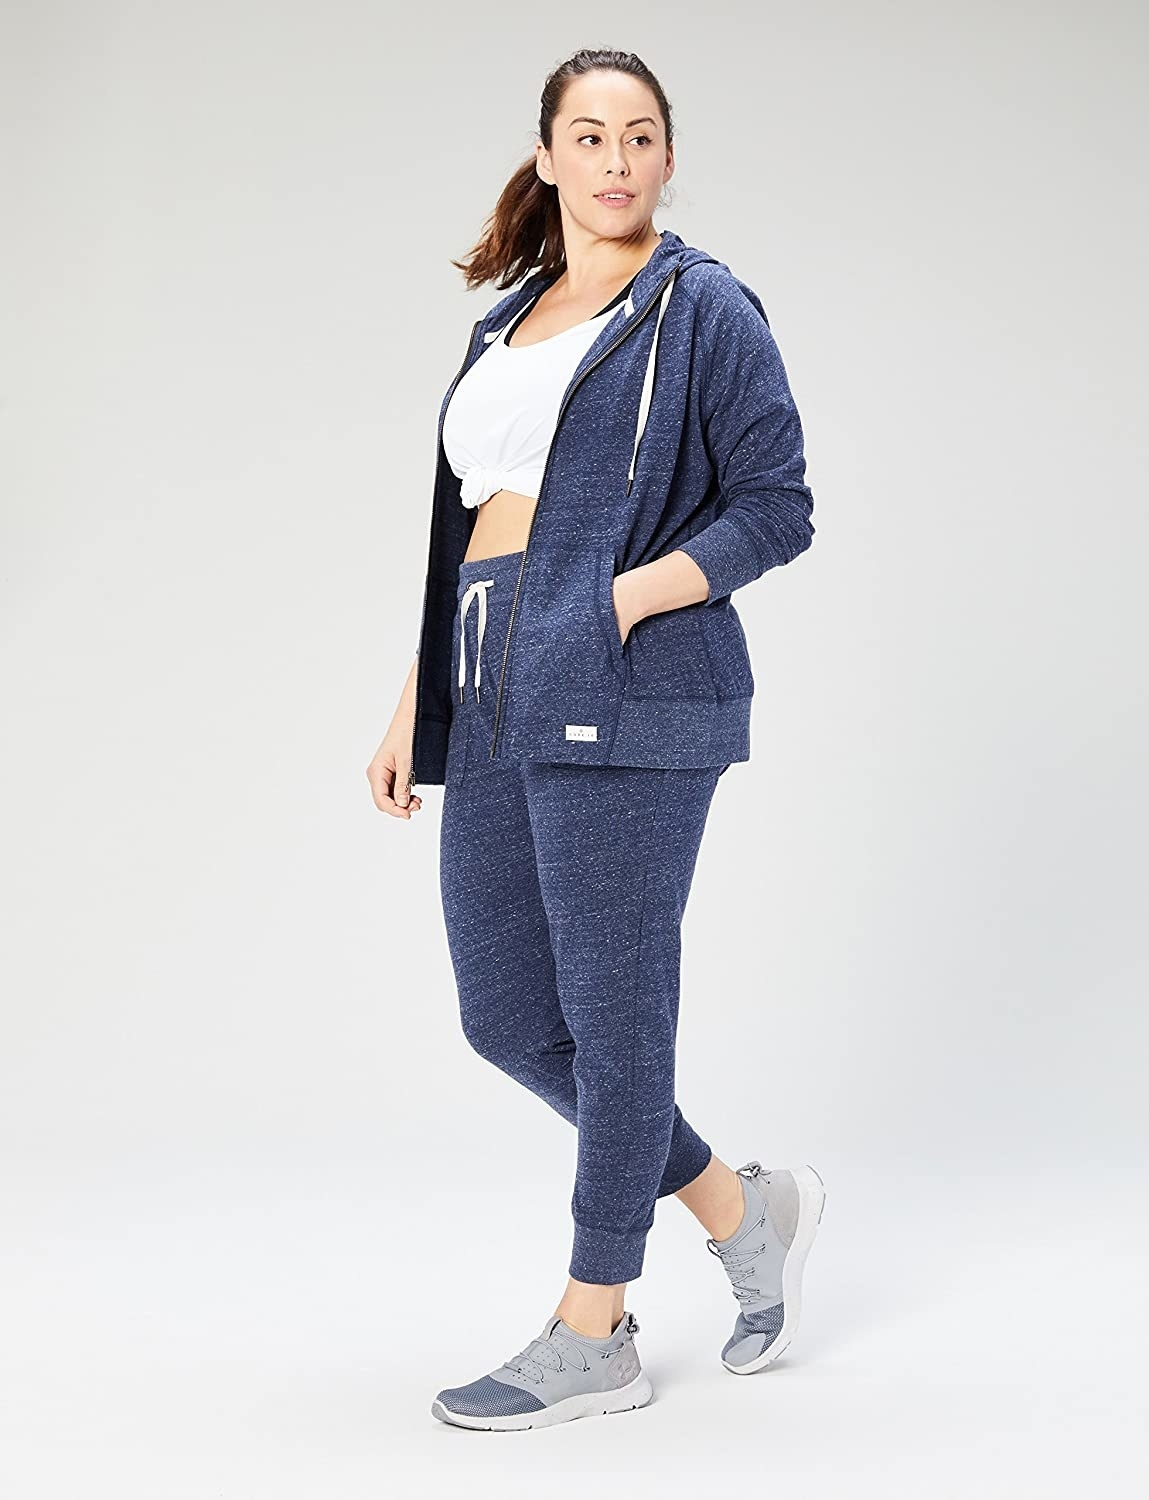 model wearing a full outfit with the joggers